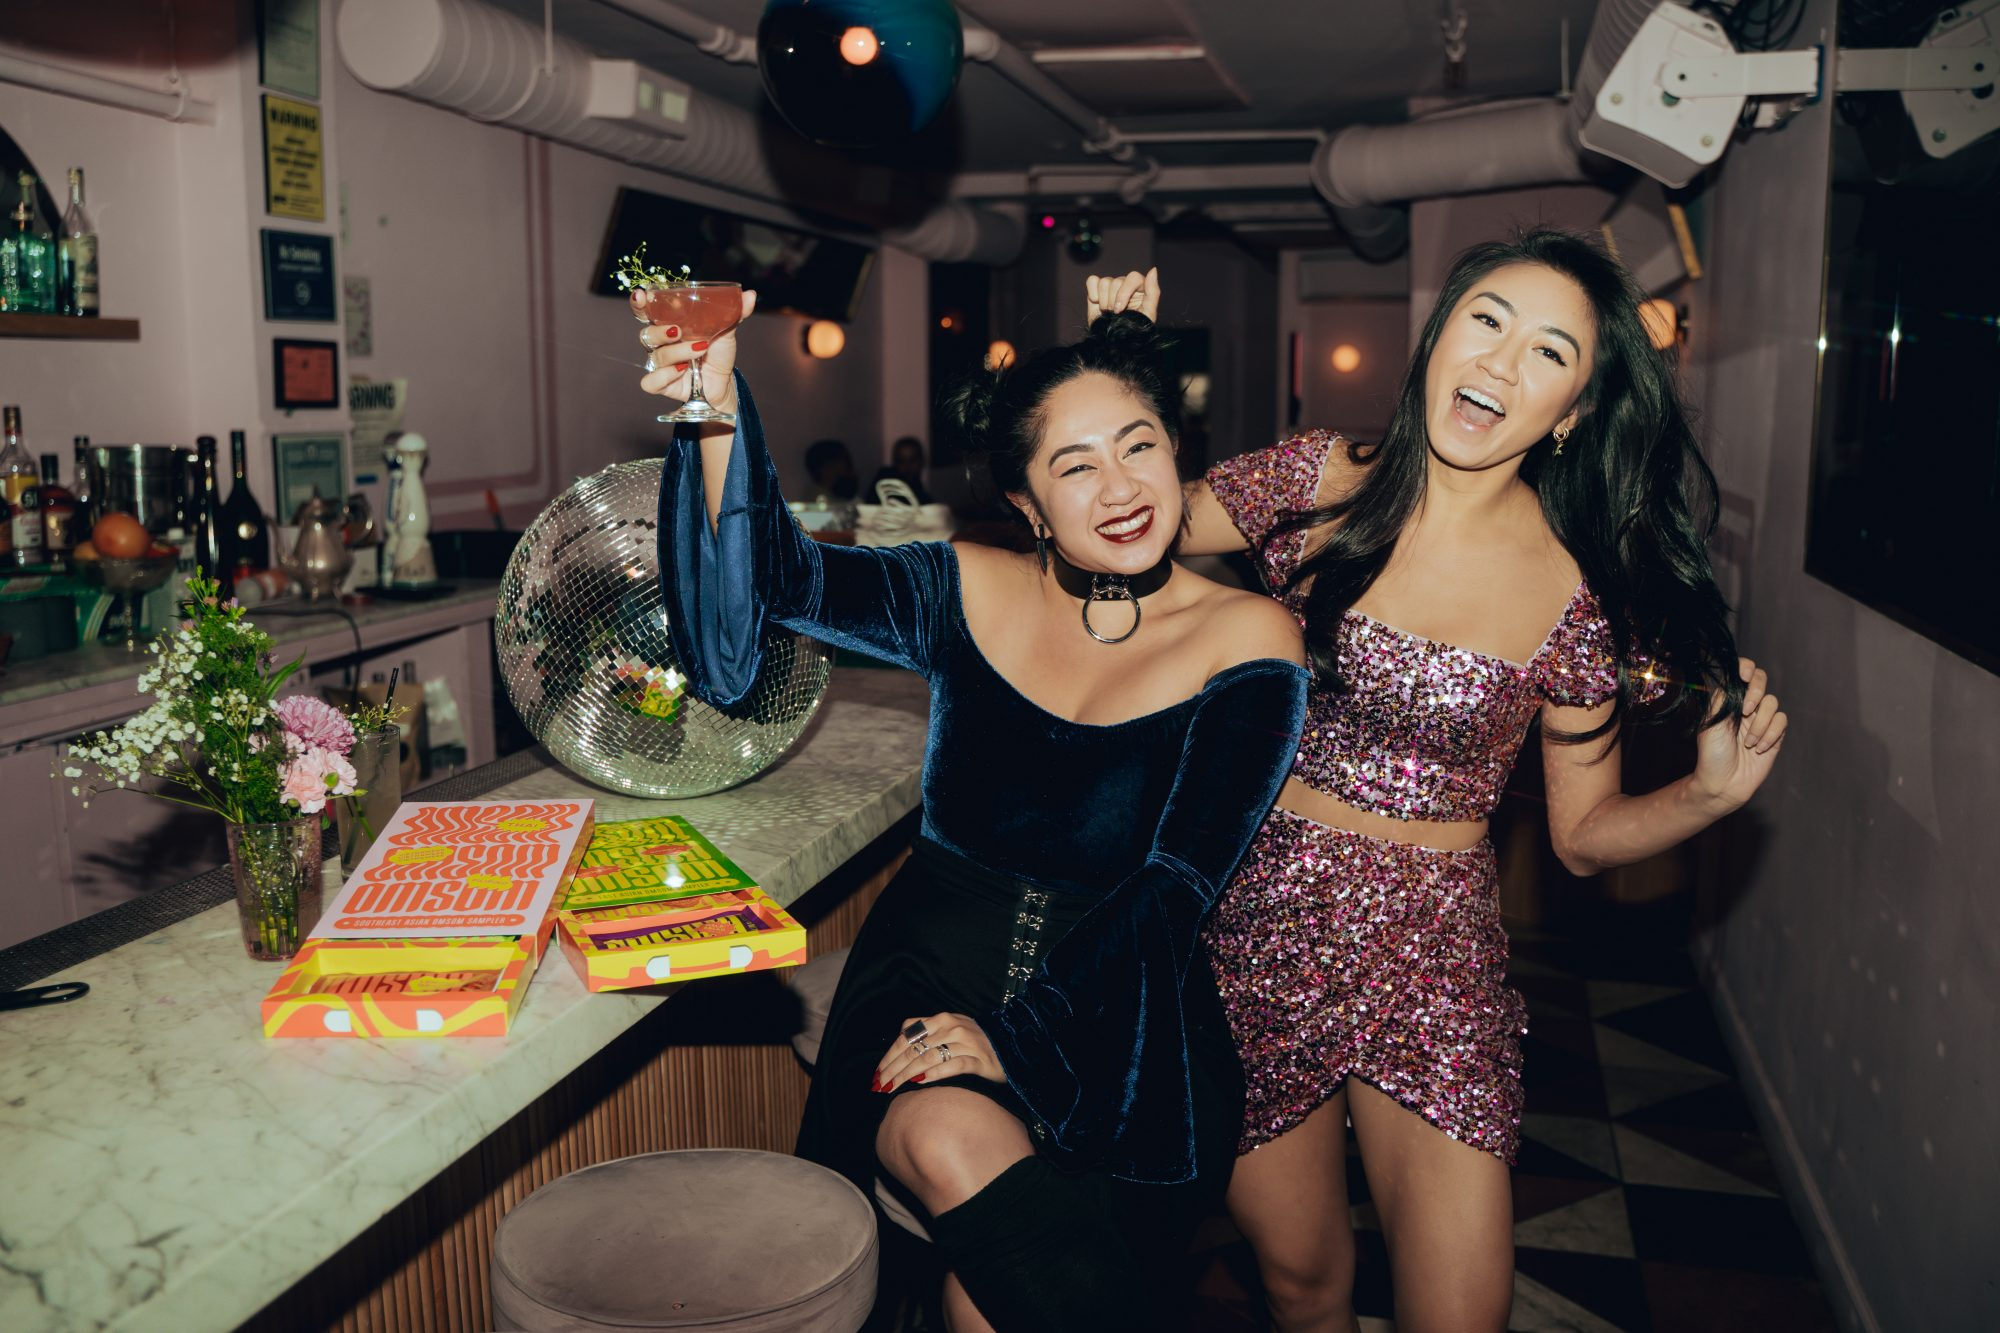 Vanessa and Kim Pham of Omsom at a bar